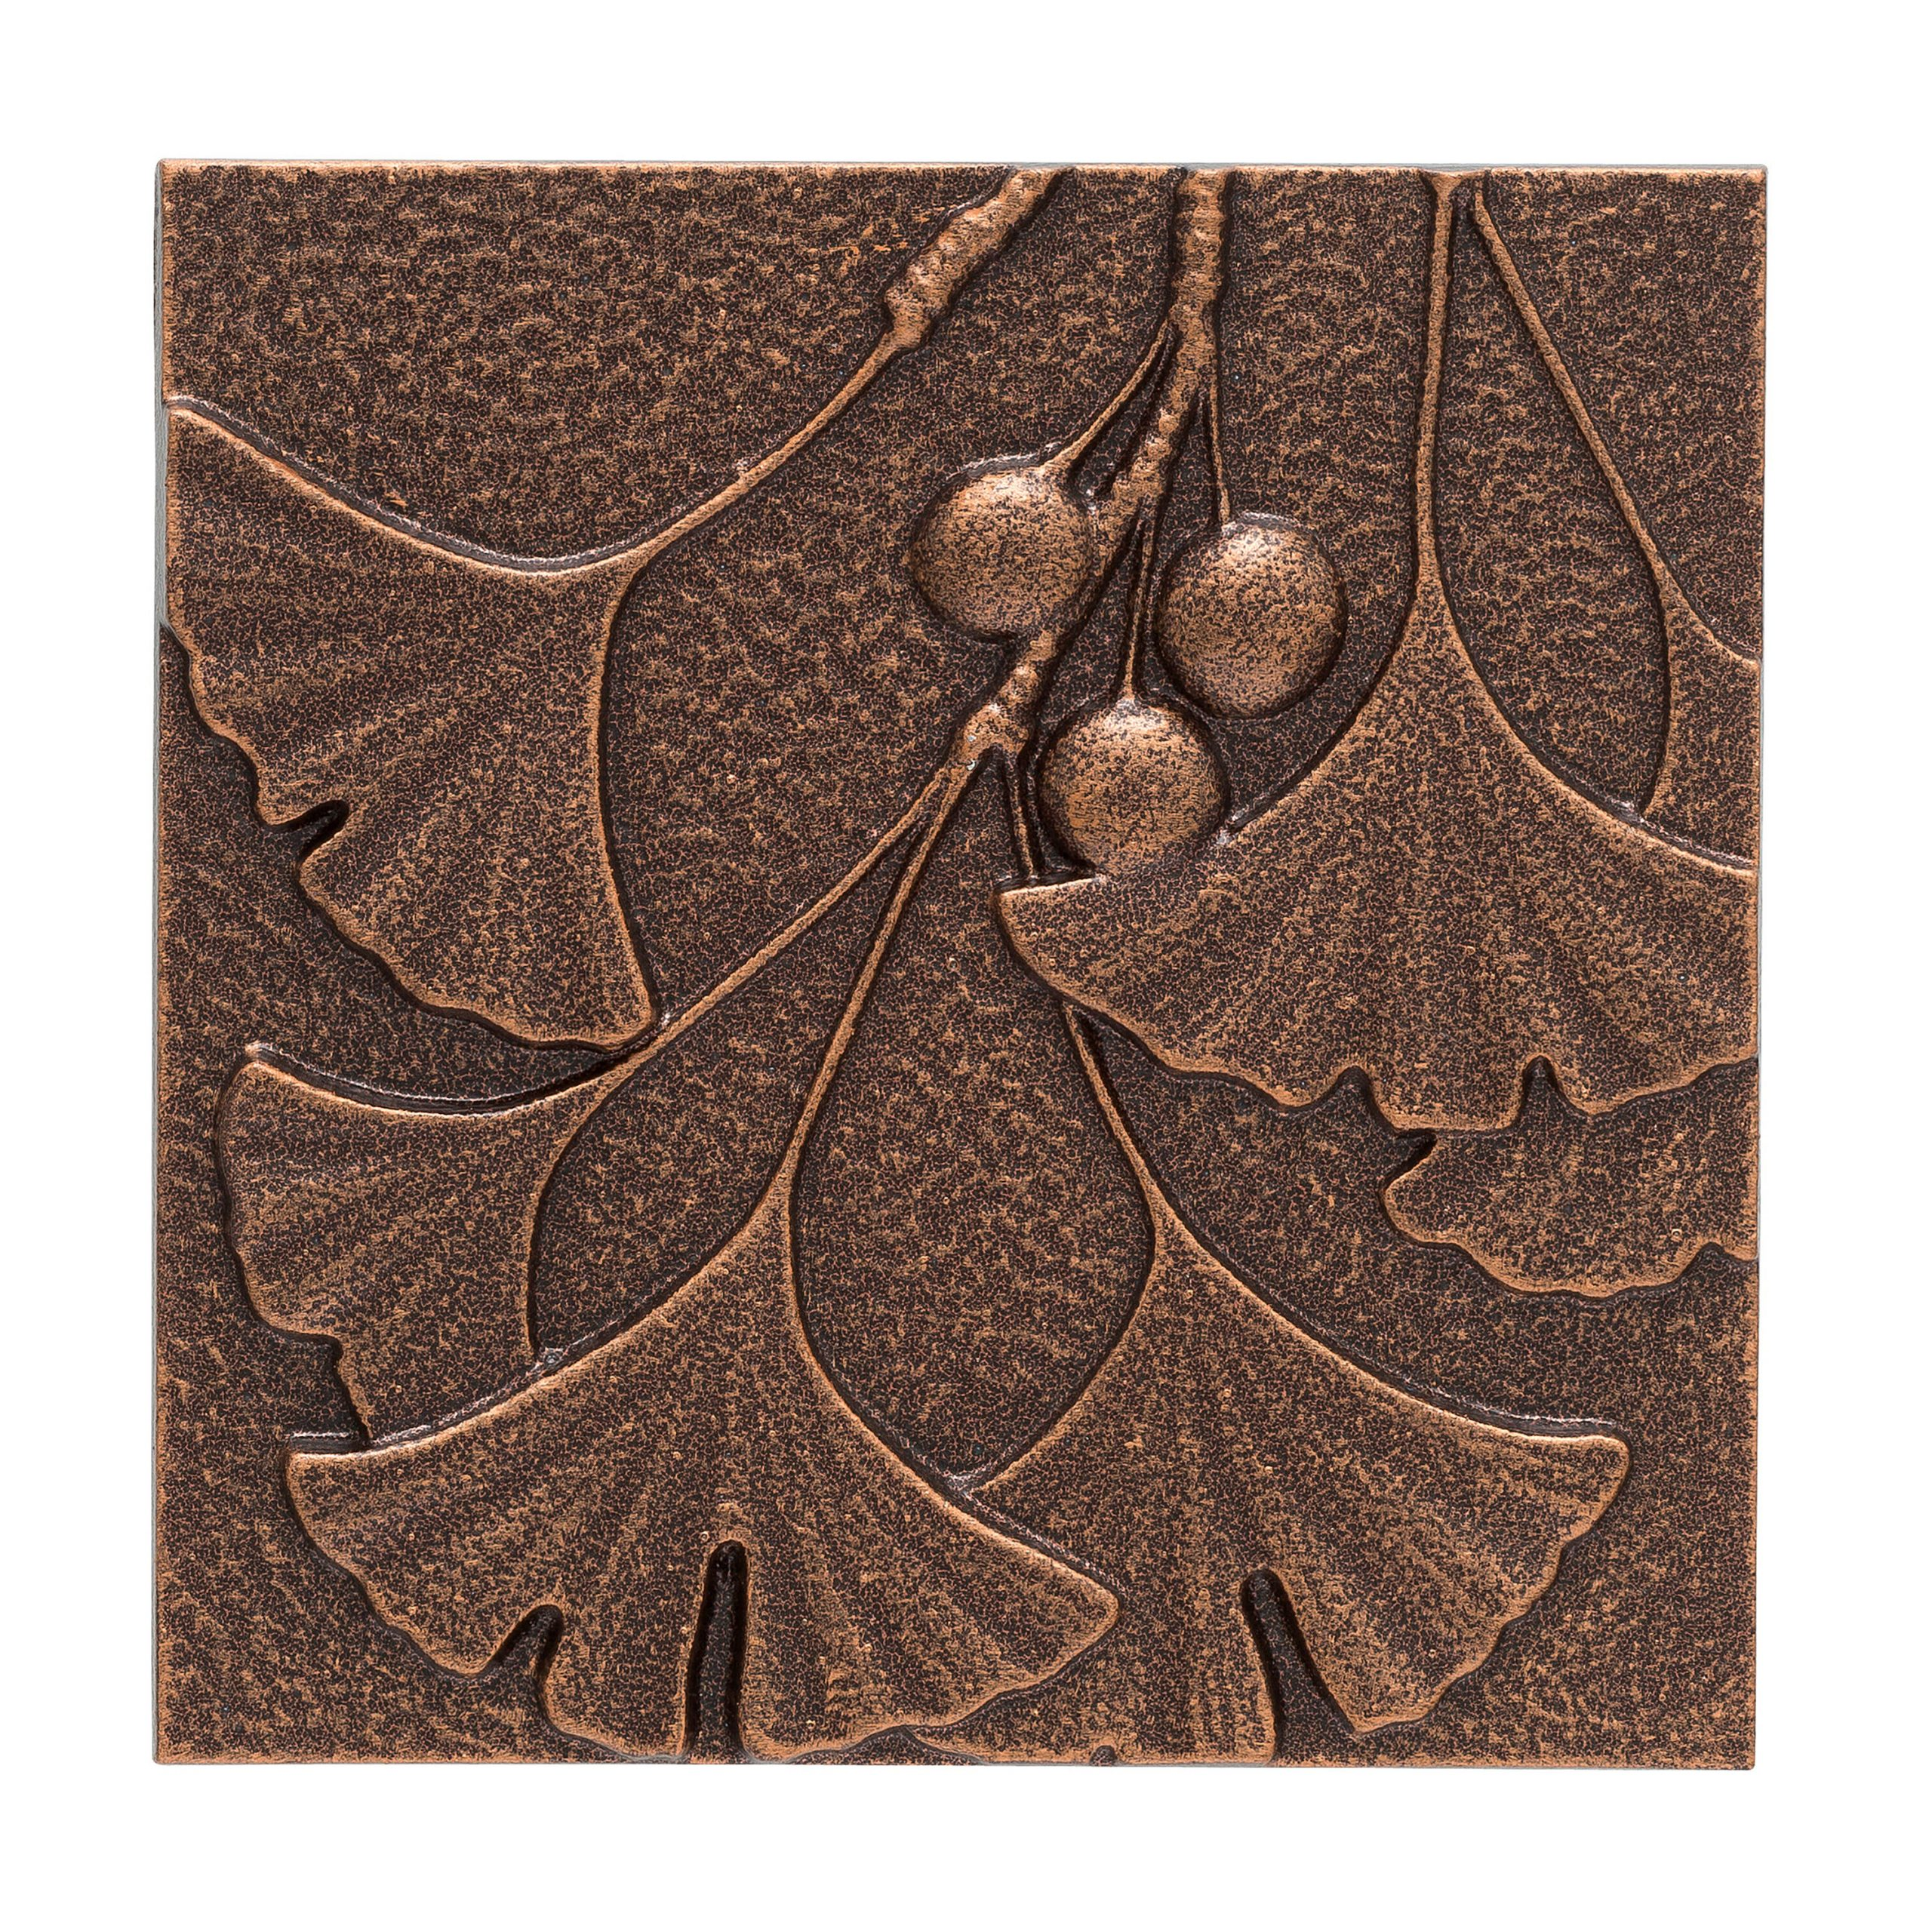 Ginkgo Leaf Metal Wall Décor By Winston Porter Pertaining To Most Up To Date Ginkgo Leaf Metal Wall Décor (View 2 of 20)